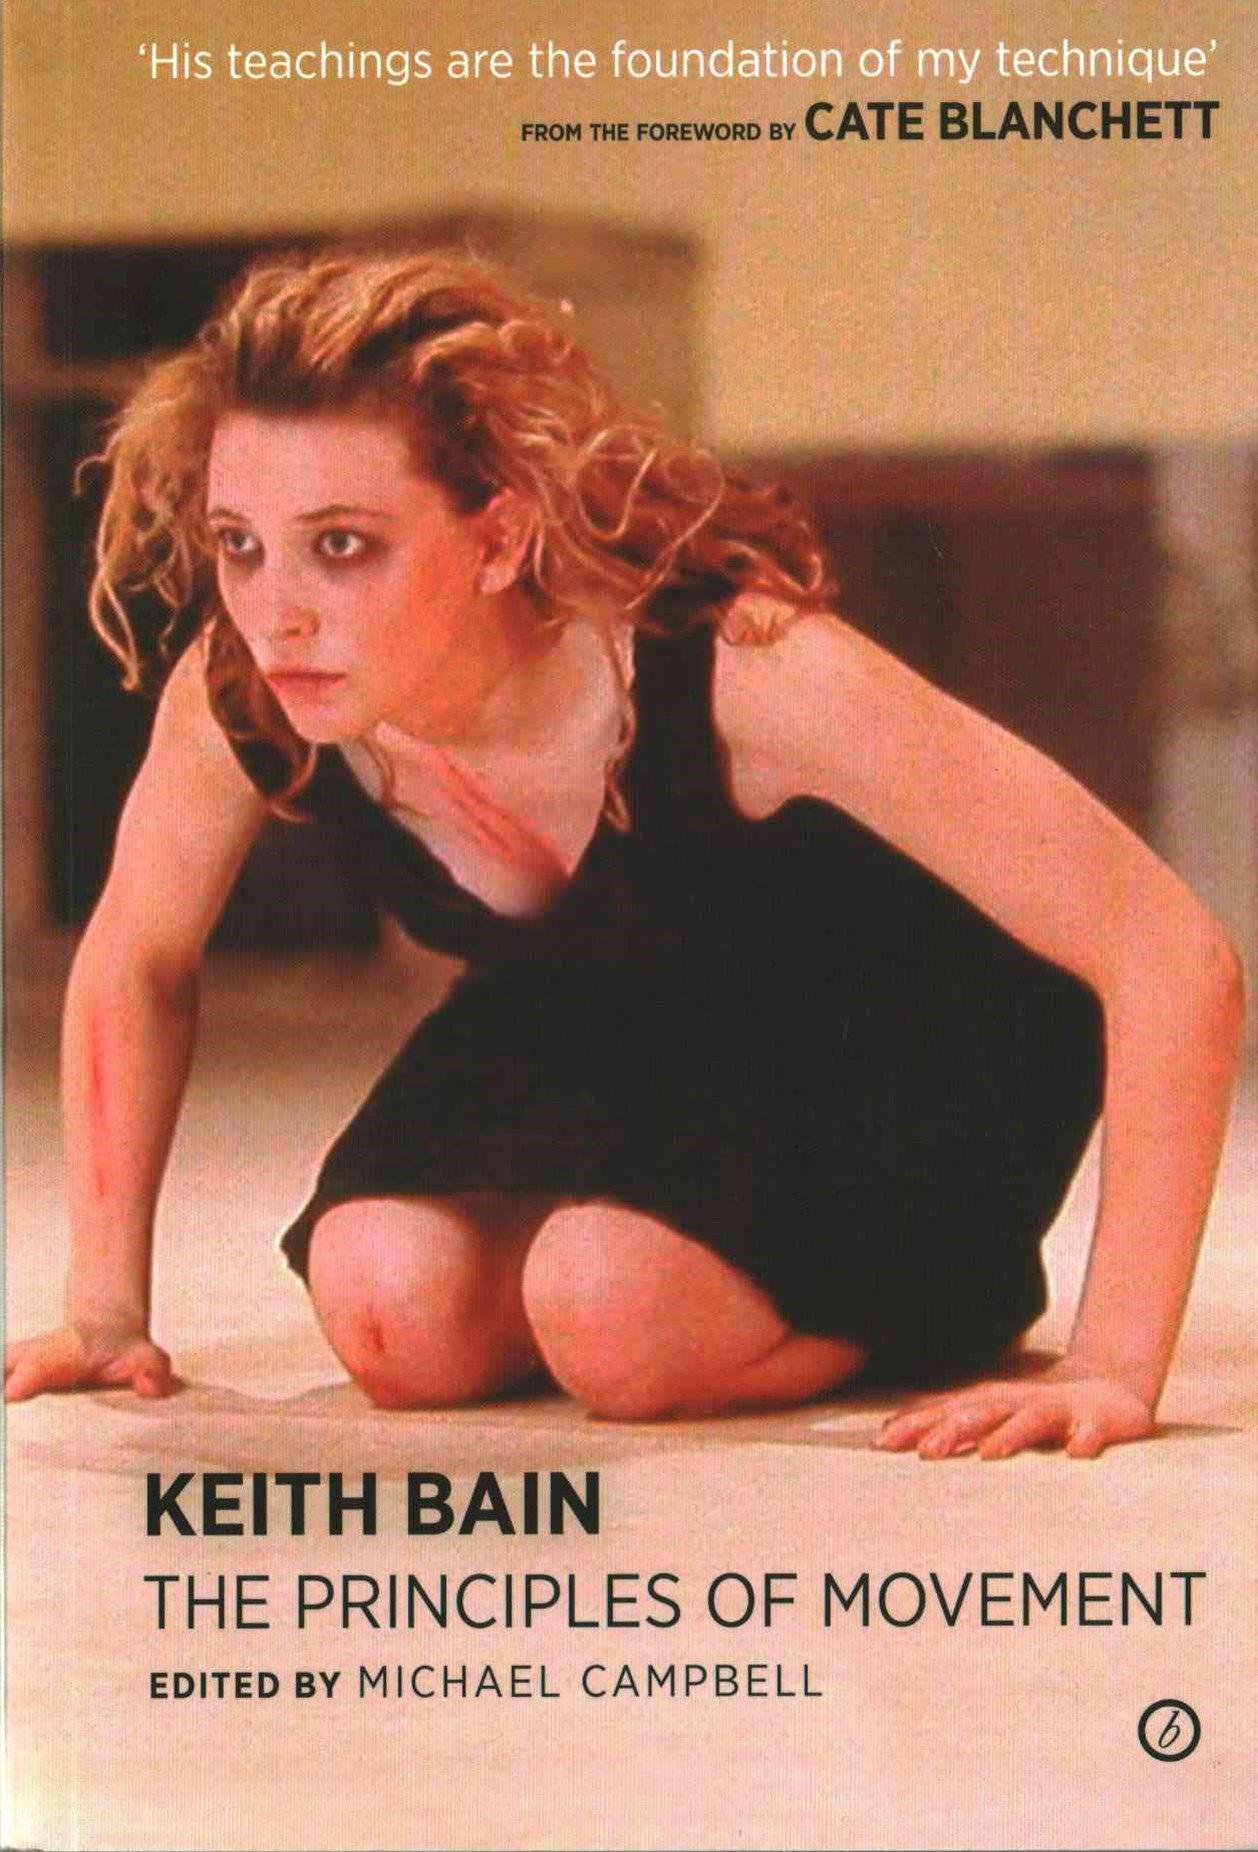 Keith Bain - The Principles of Movement